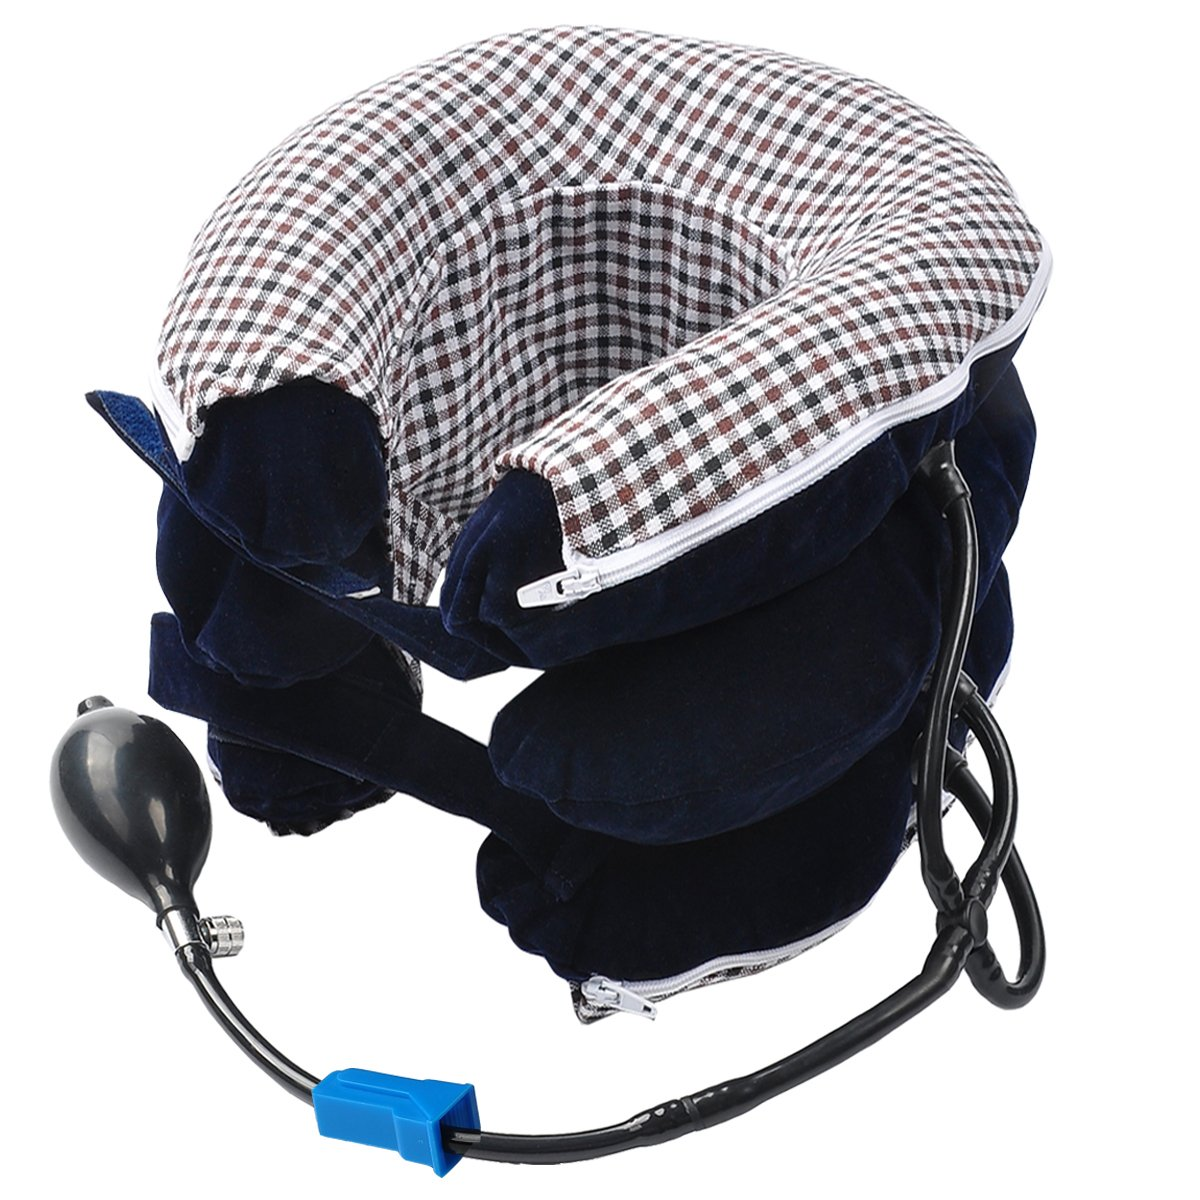 Inflatable Cervical Neck Traction Device-Professional Neck Cervical Pillow Reduce Head & Neck & Shoulder Pain Increasing Blood Circulation Fully Adjustable to Fit Men and Women (Blue)